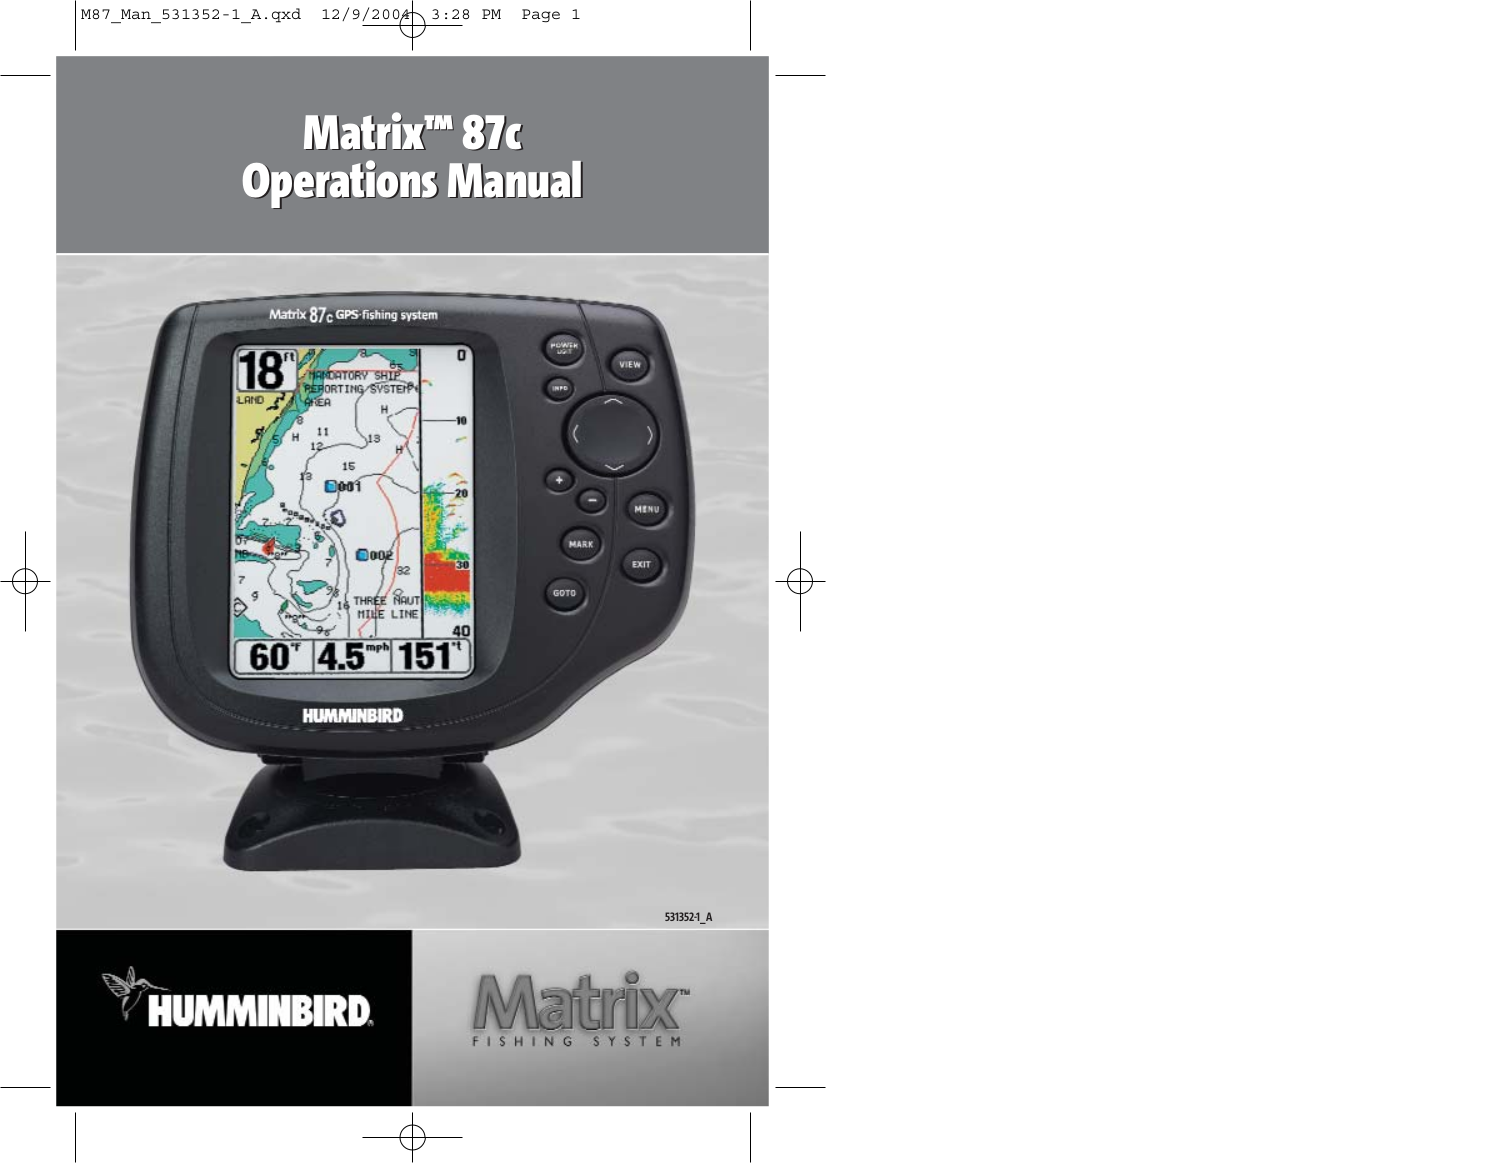 pdf for Humminbird GPS Matrix 87 manual